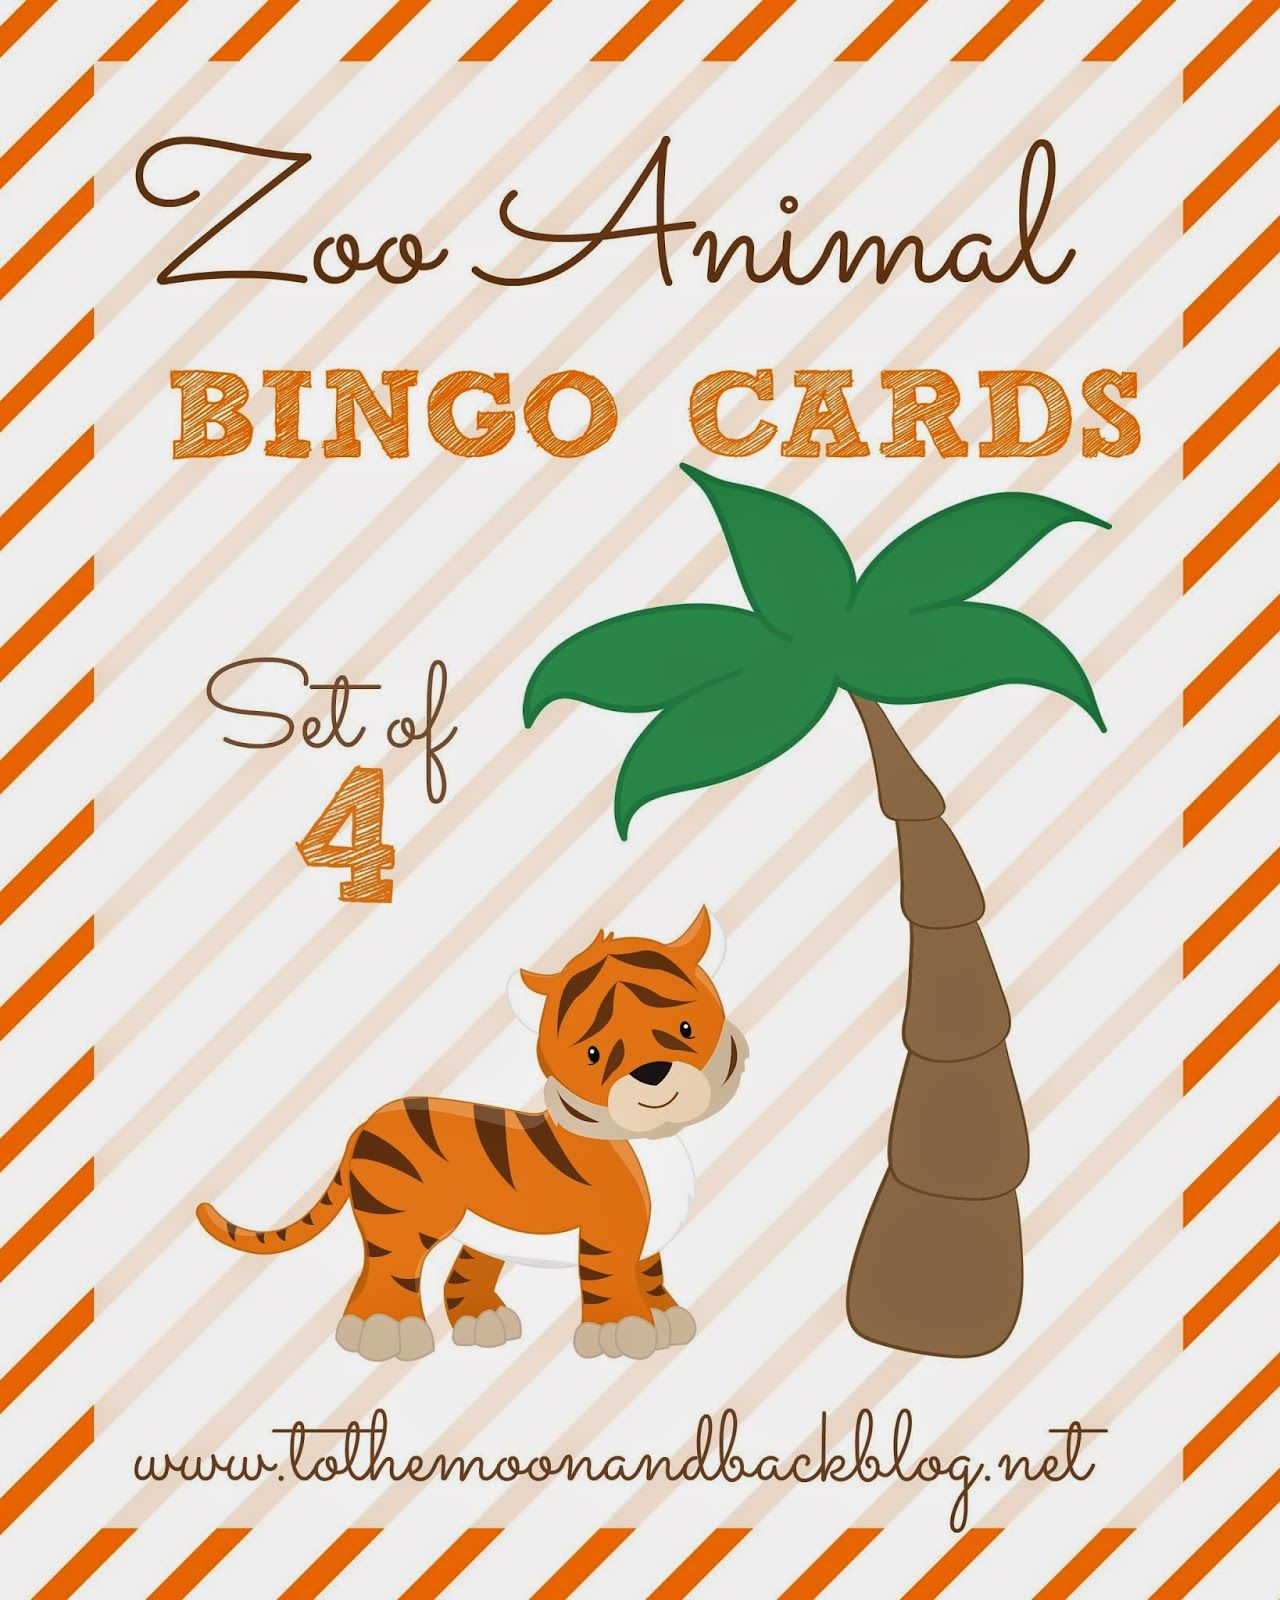 A Trip To The Zoo Plus Fun Resources And Free Printables